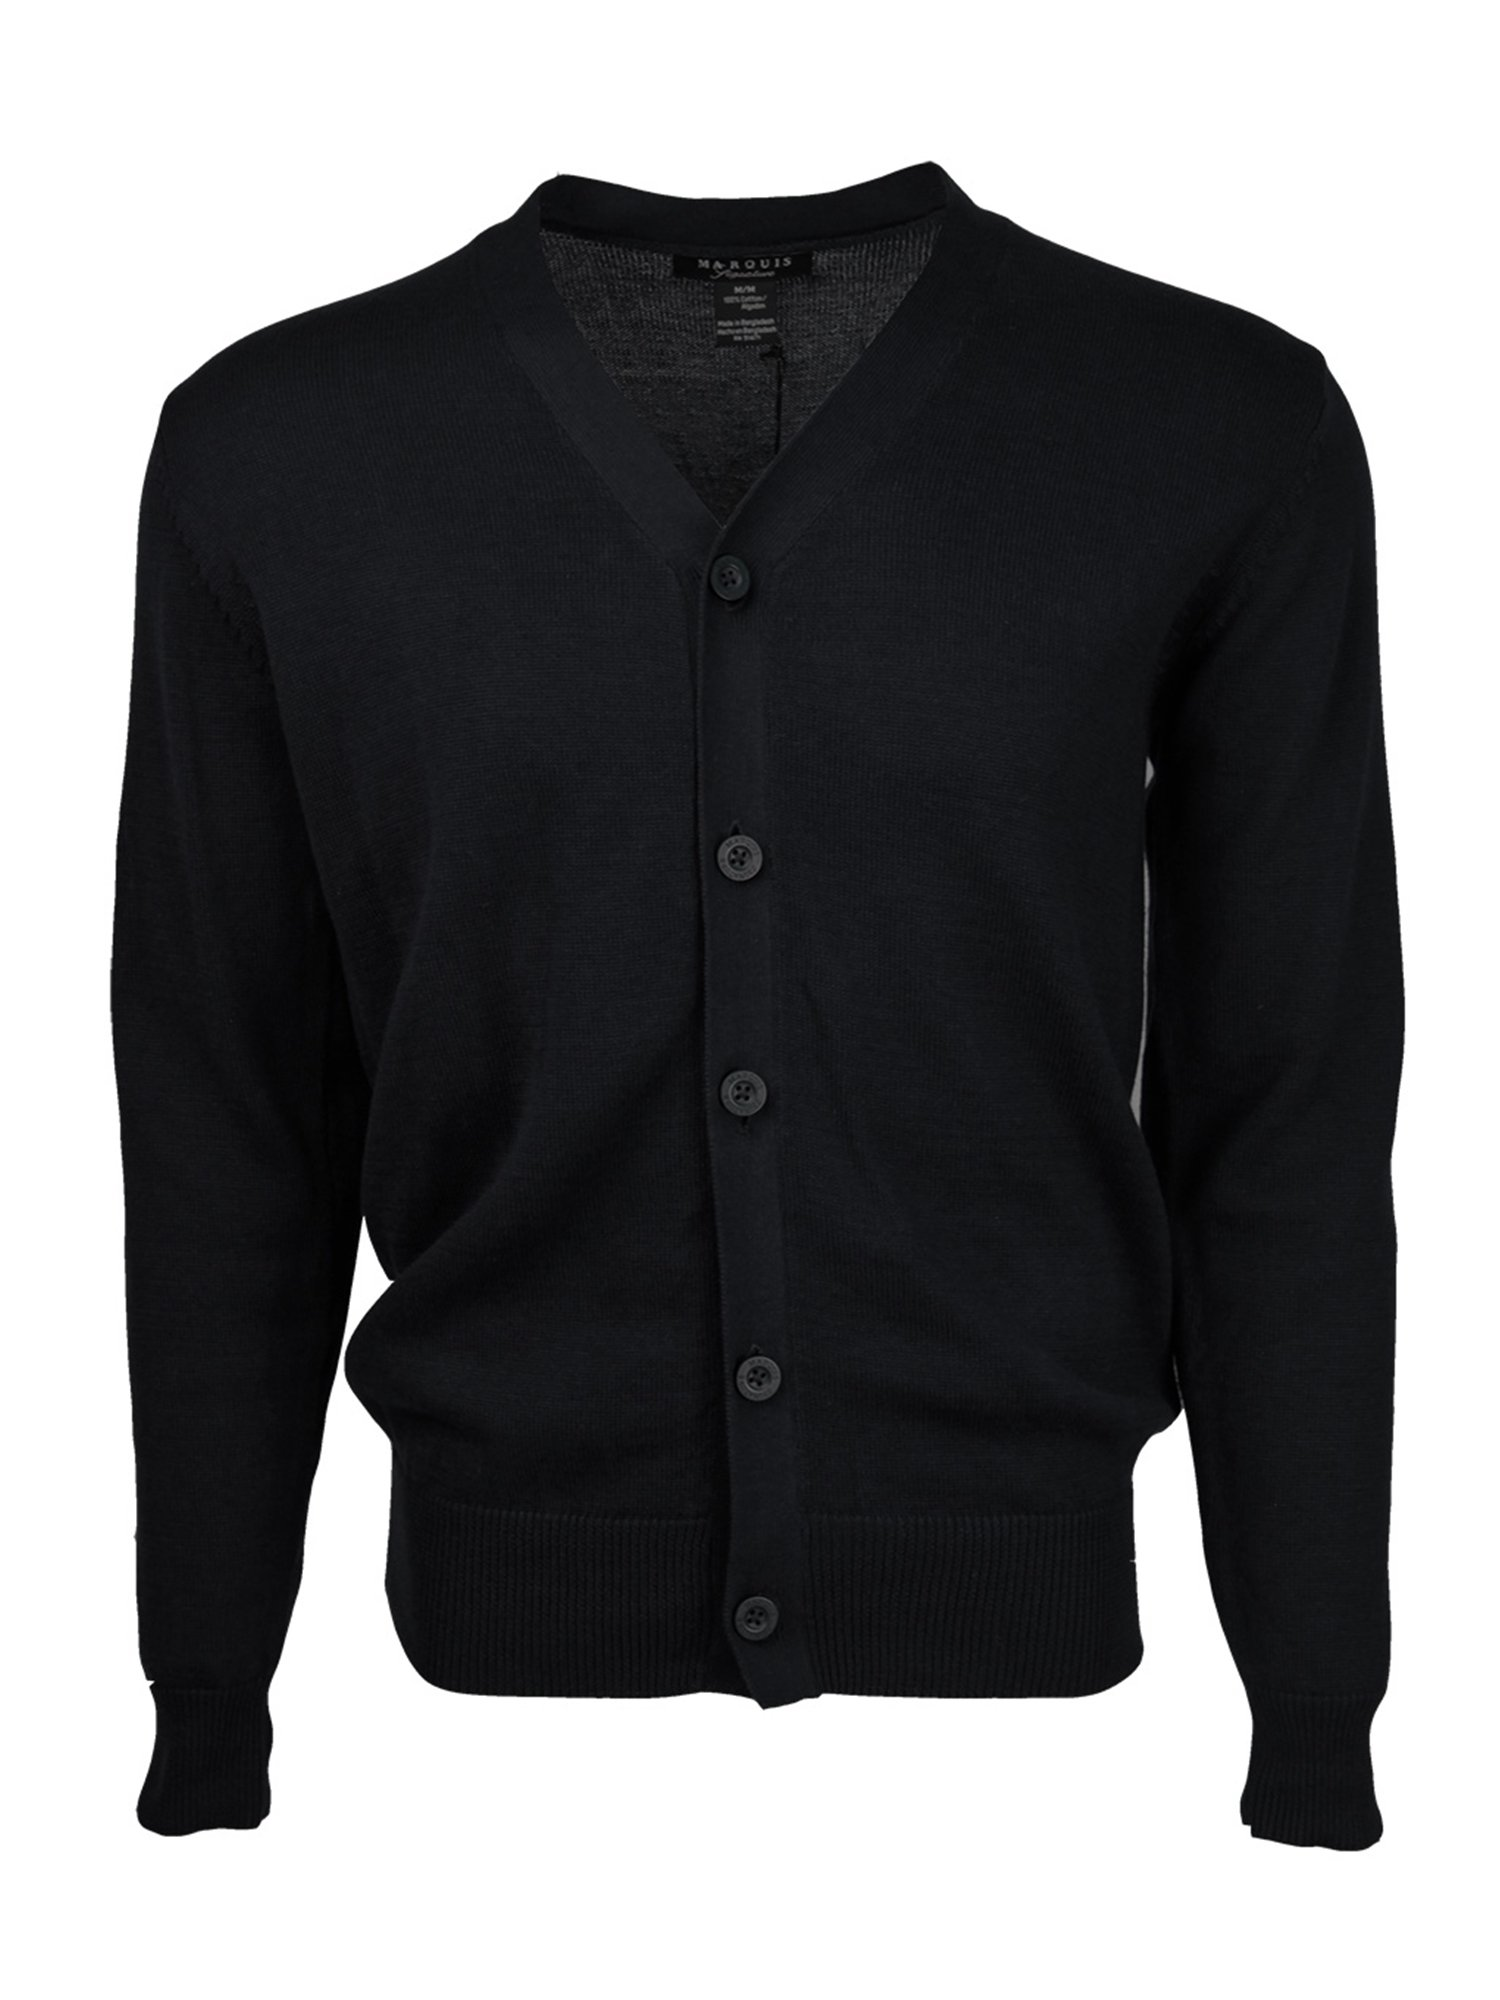 Marquis Men's Black Solid Button 100% Cotton Cardigan